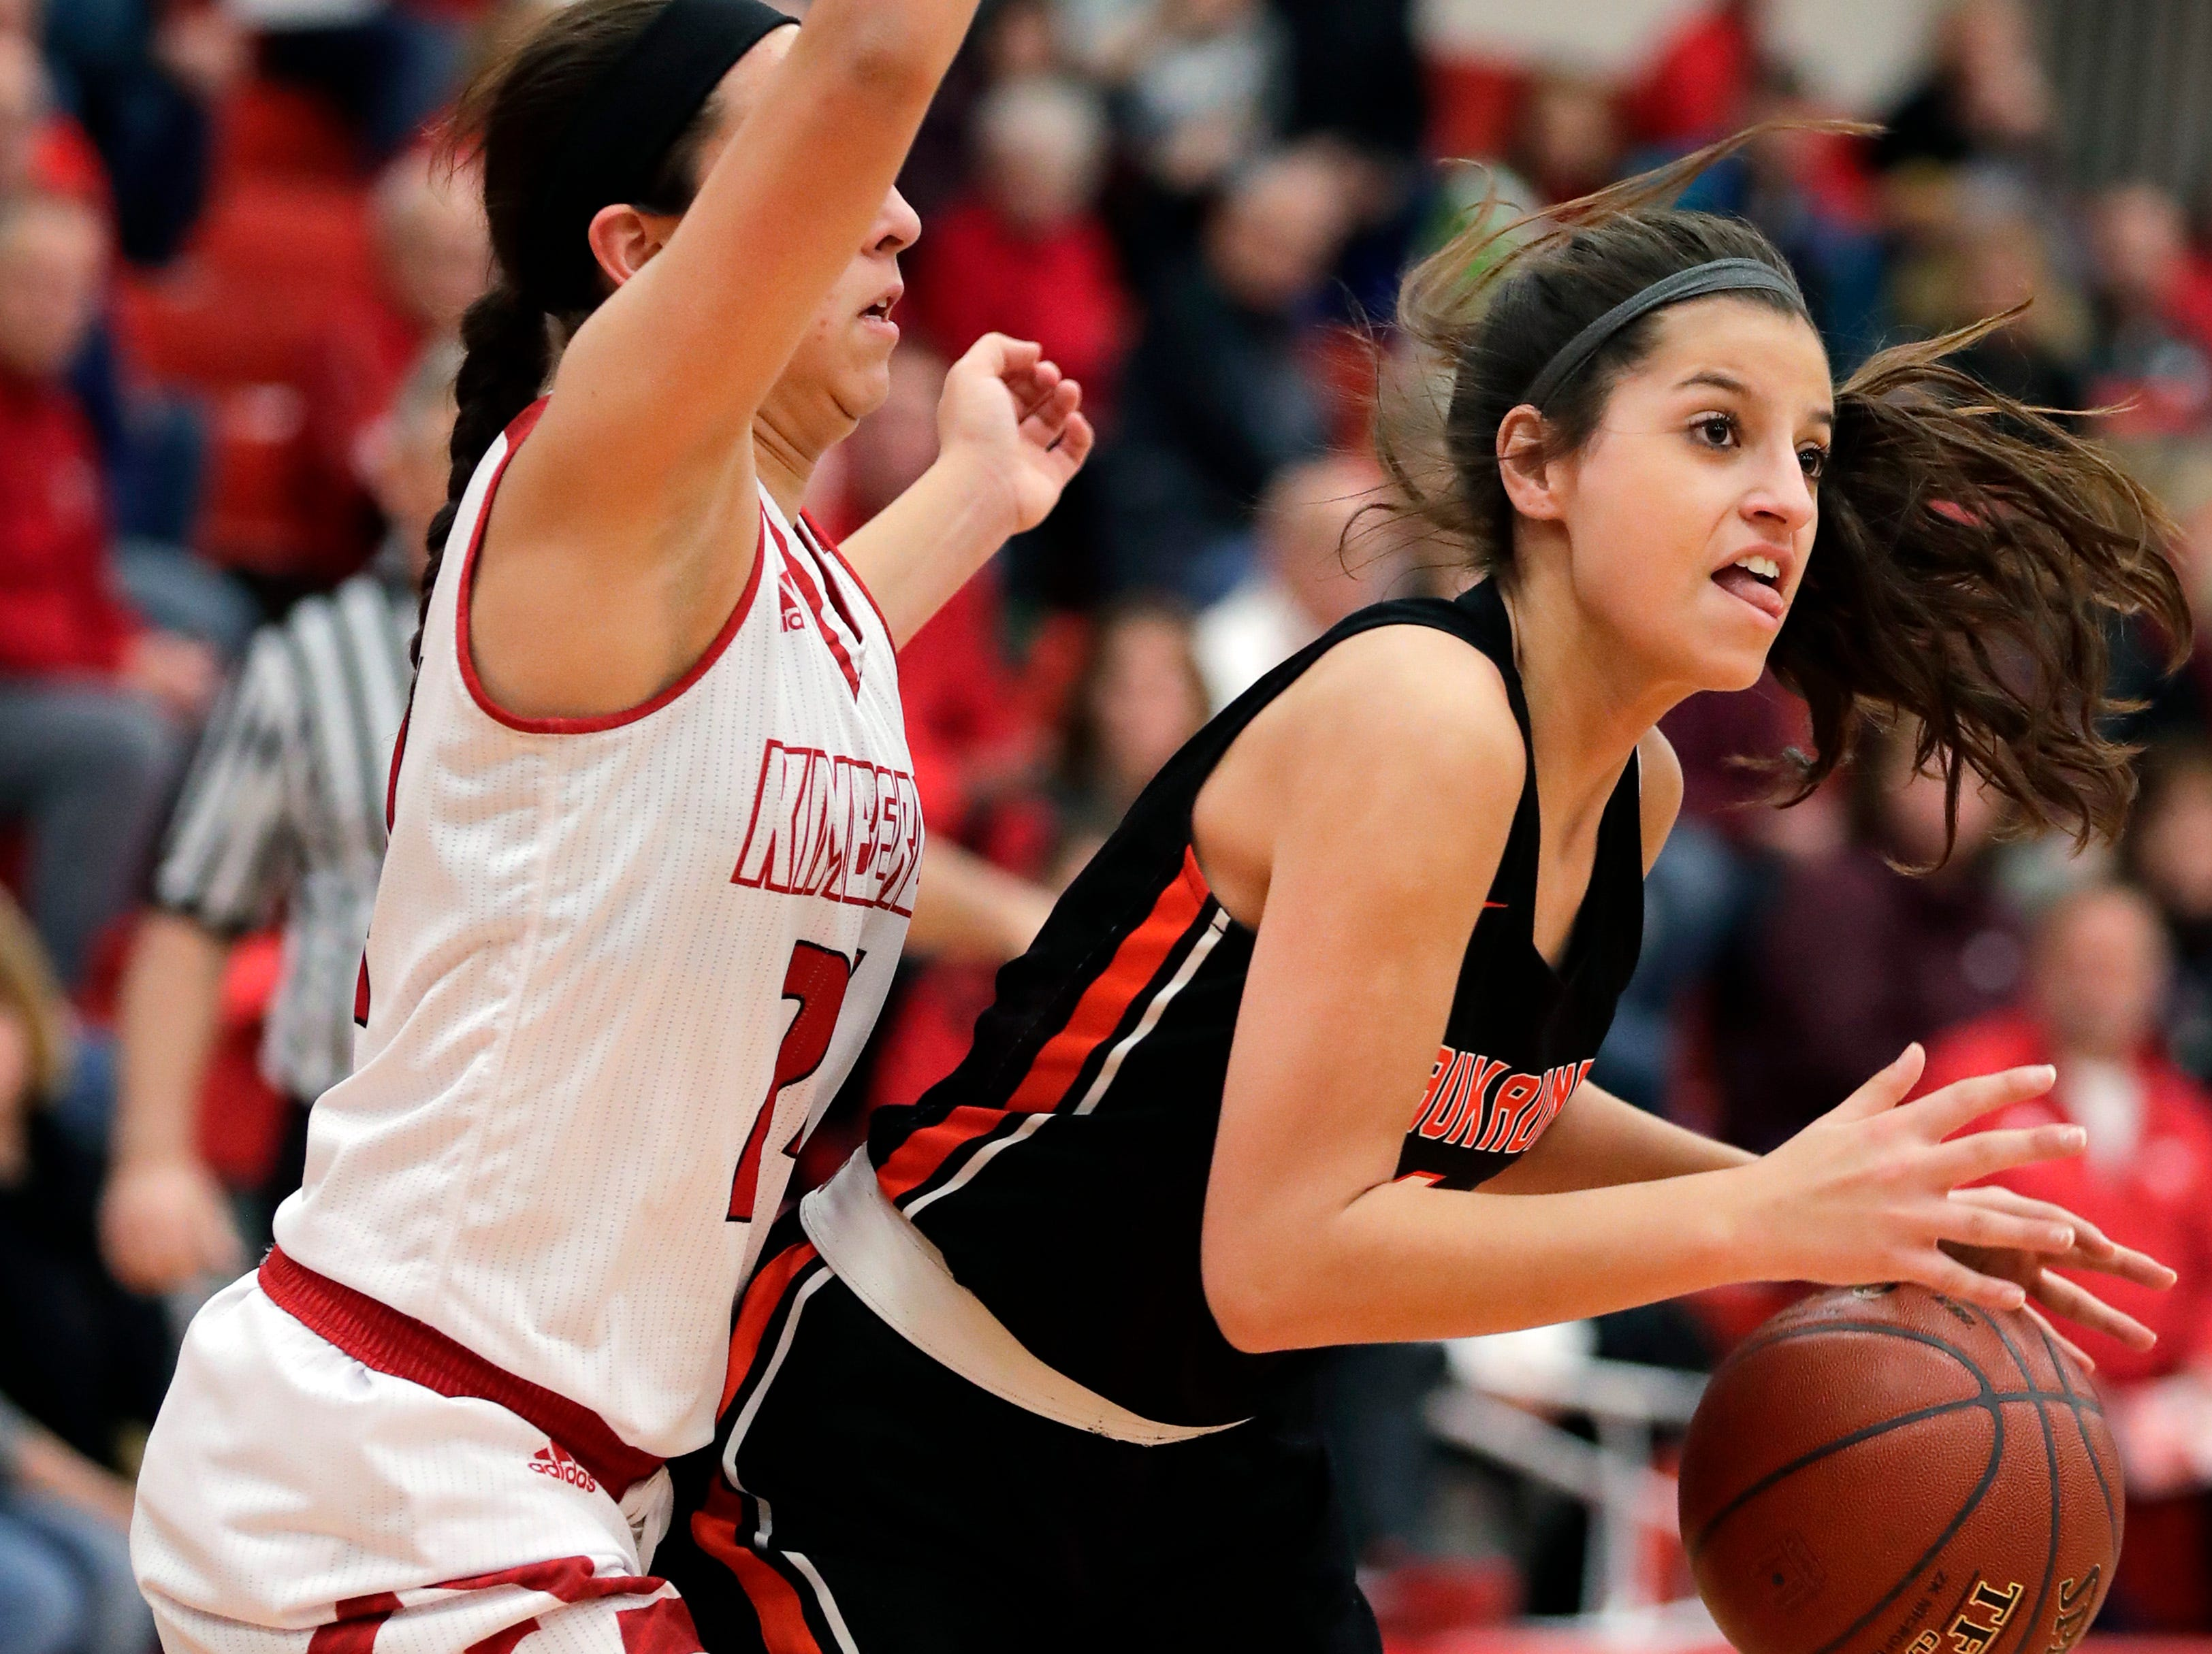 Kimberly High School's Shea Dechant tries to cover Kaukauna High School's Sutten Ebben Friday, Dec. 7, 2018, in Kimberly, Wis.